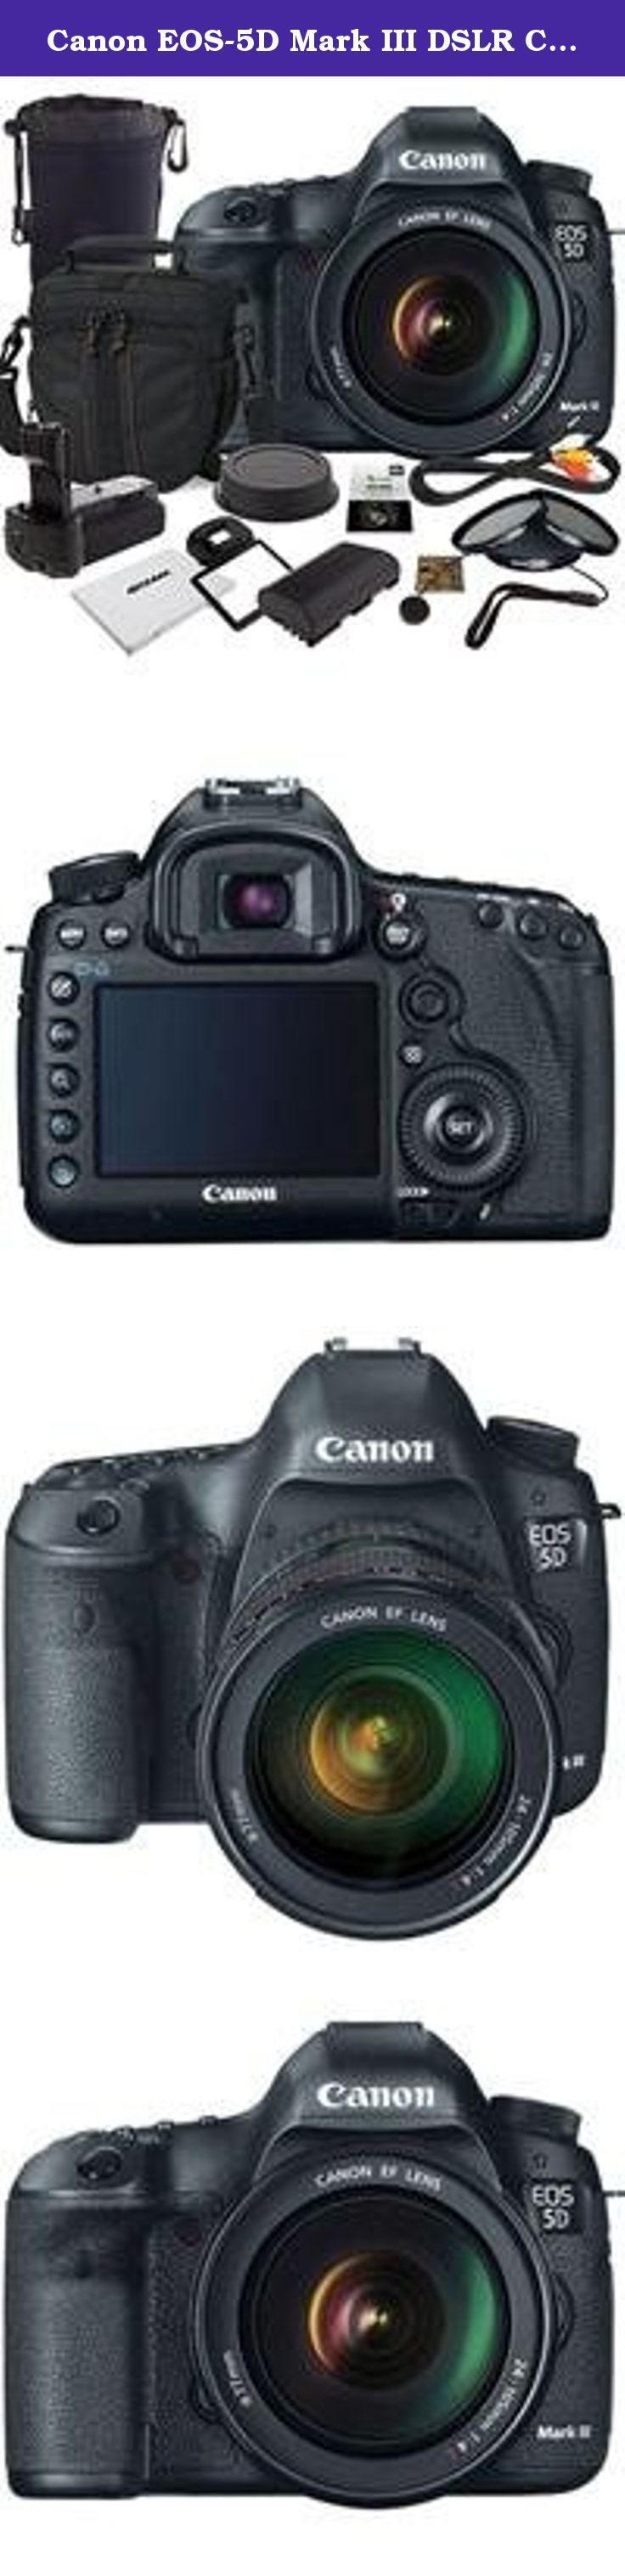 Canon EOS-5D Mark III DSLR Camera Bundle. USA. Value Kit with Accessories. Canon EOS 5D Mark III Pro HDSLR the Long-awaited successor to groundbreaking Canon 5D Mark II The Canon EOS 5D Mark III is an HDSLR designed to build on the unprecedented success of its predecessor, the Canon EOS 5D Mark II. The 5DMII broke new ground in the world of HD video, offering true high-resolution, cinema-quality video capture for the first time in a DSLR, and started a resolution in cinematography that...